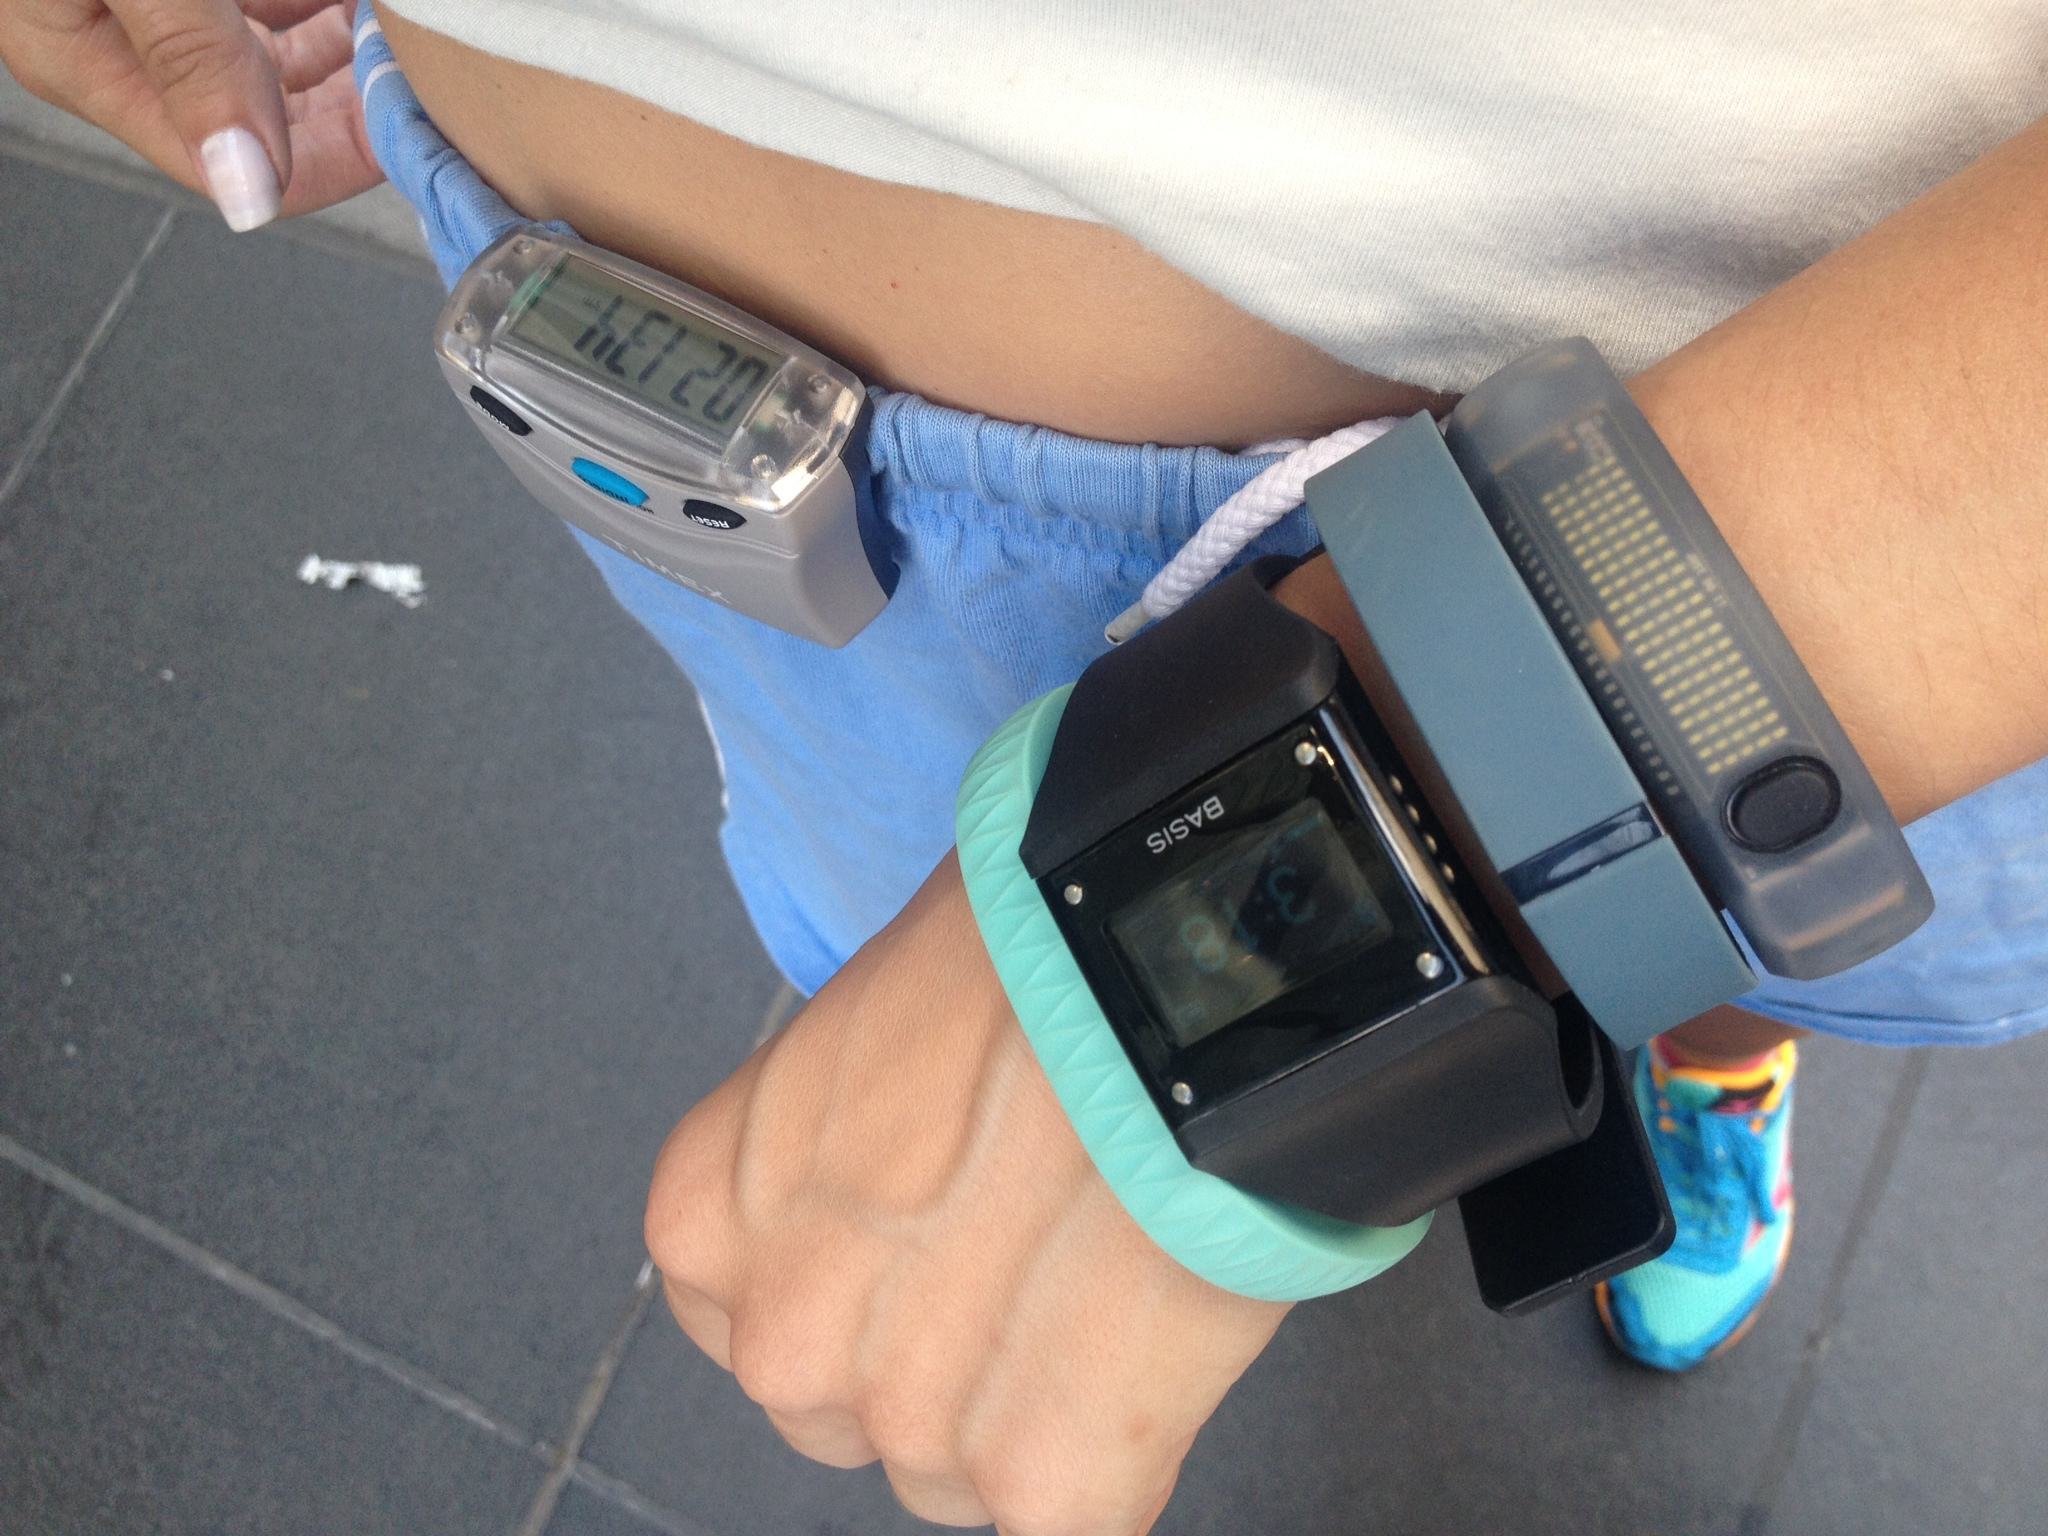 Comparing Wearables: Fitbit Flex vs. Jawbone Up and More